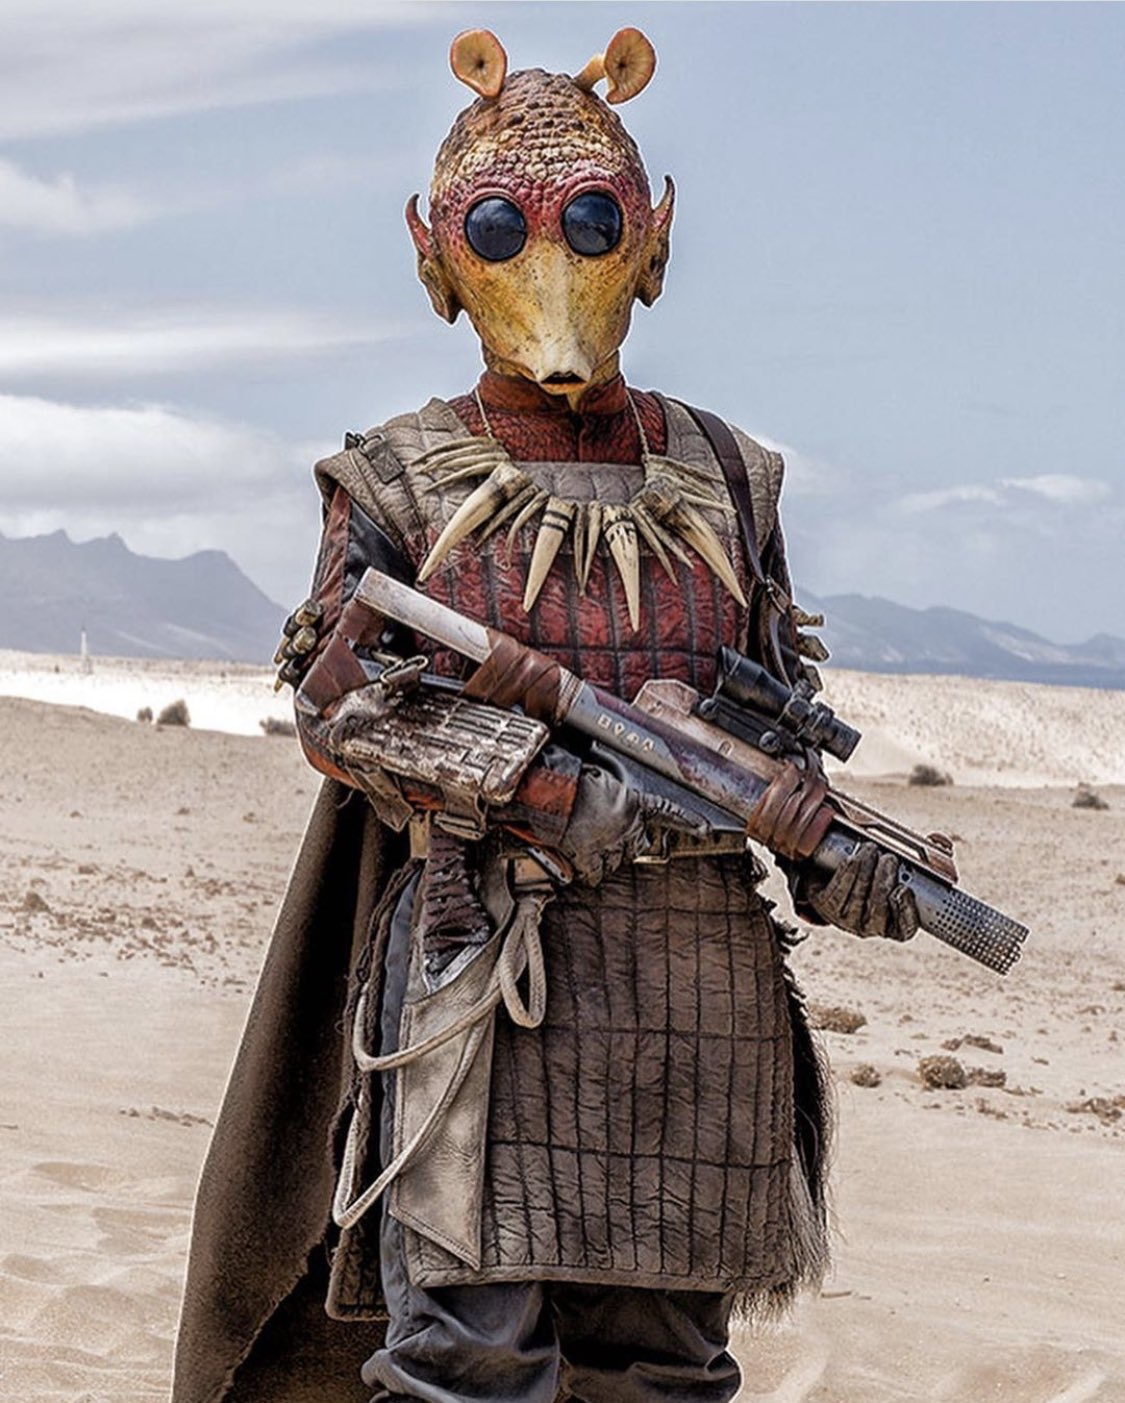 Solo did a great job of blending new species with OT era ones. I hope we see some more classic species in the Sequel Tri...